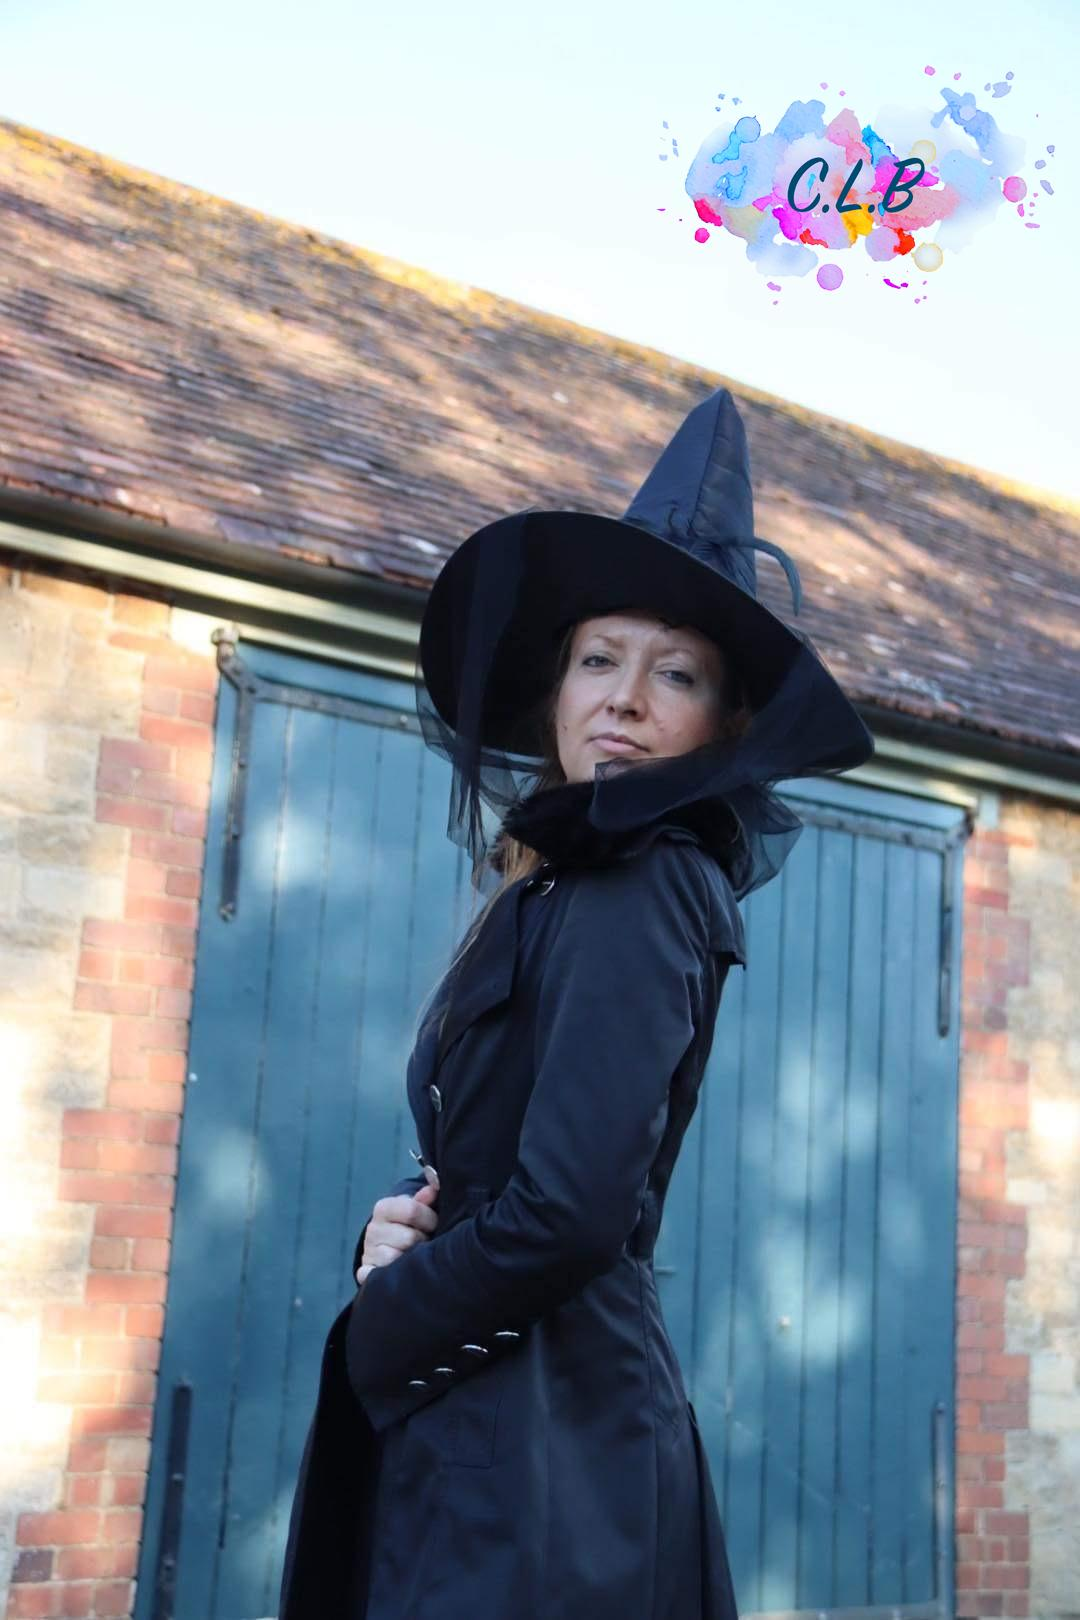 Caroline the witch of Lacock village